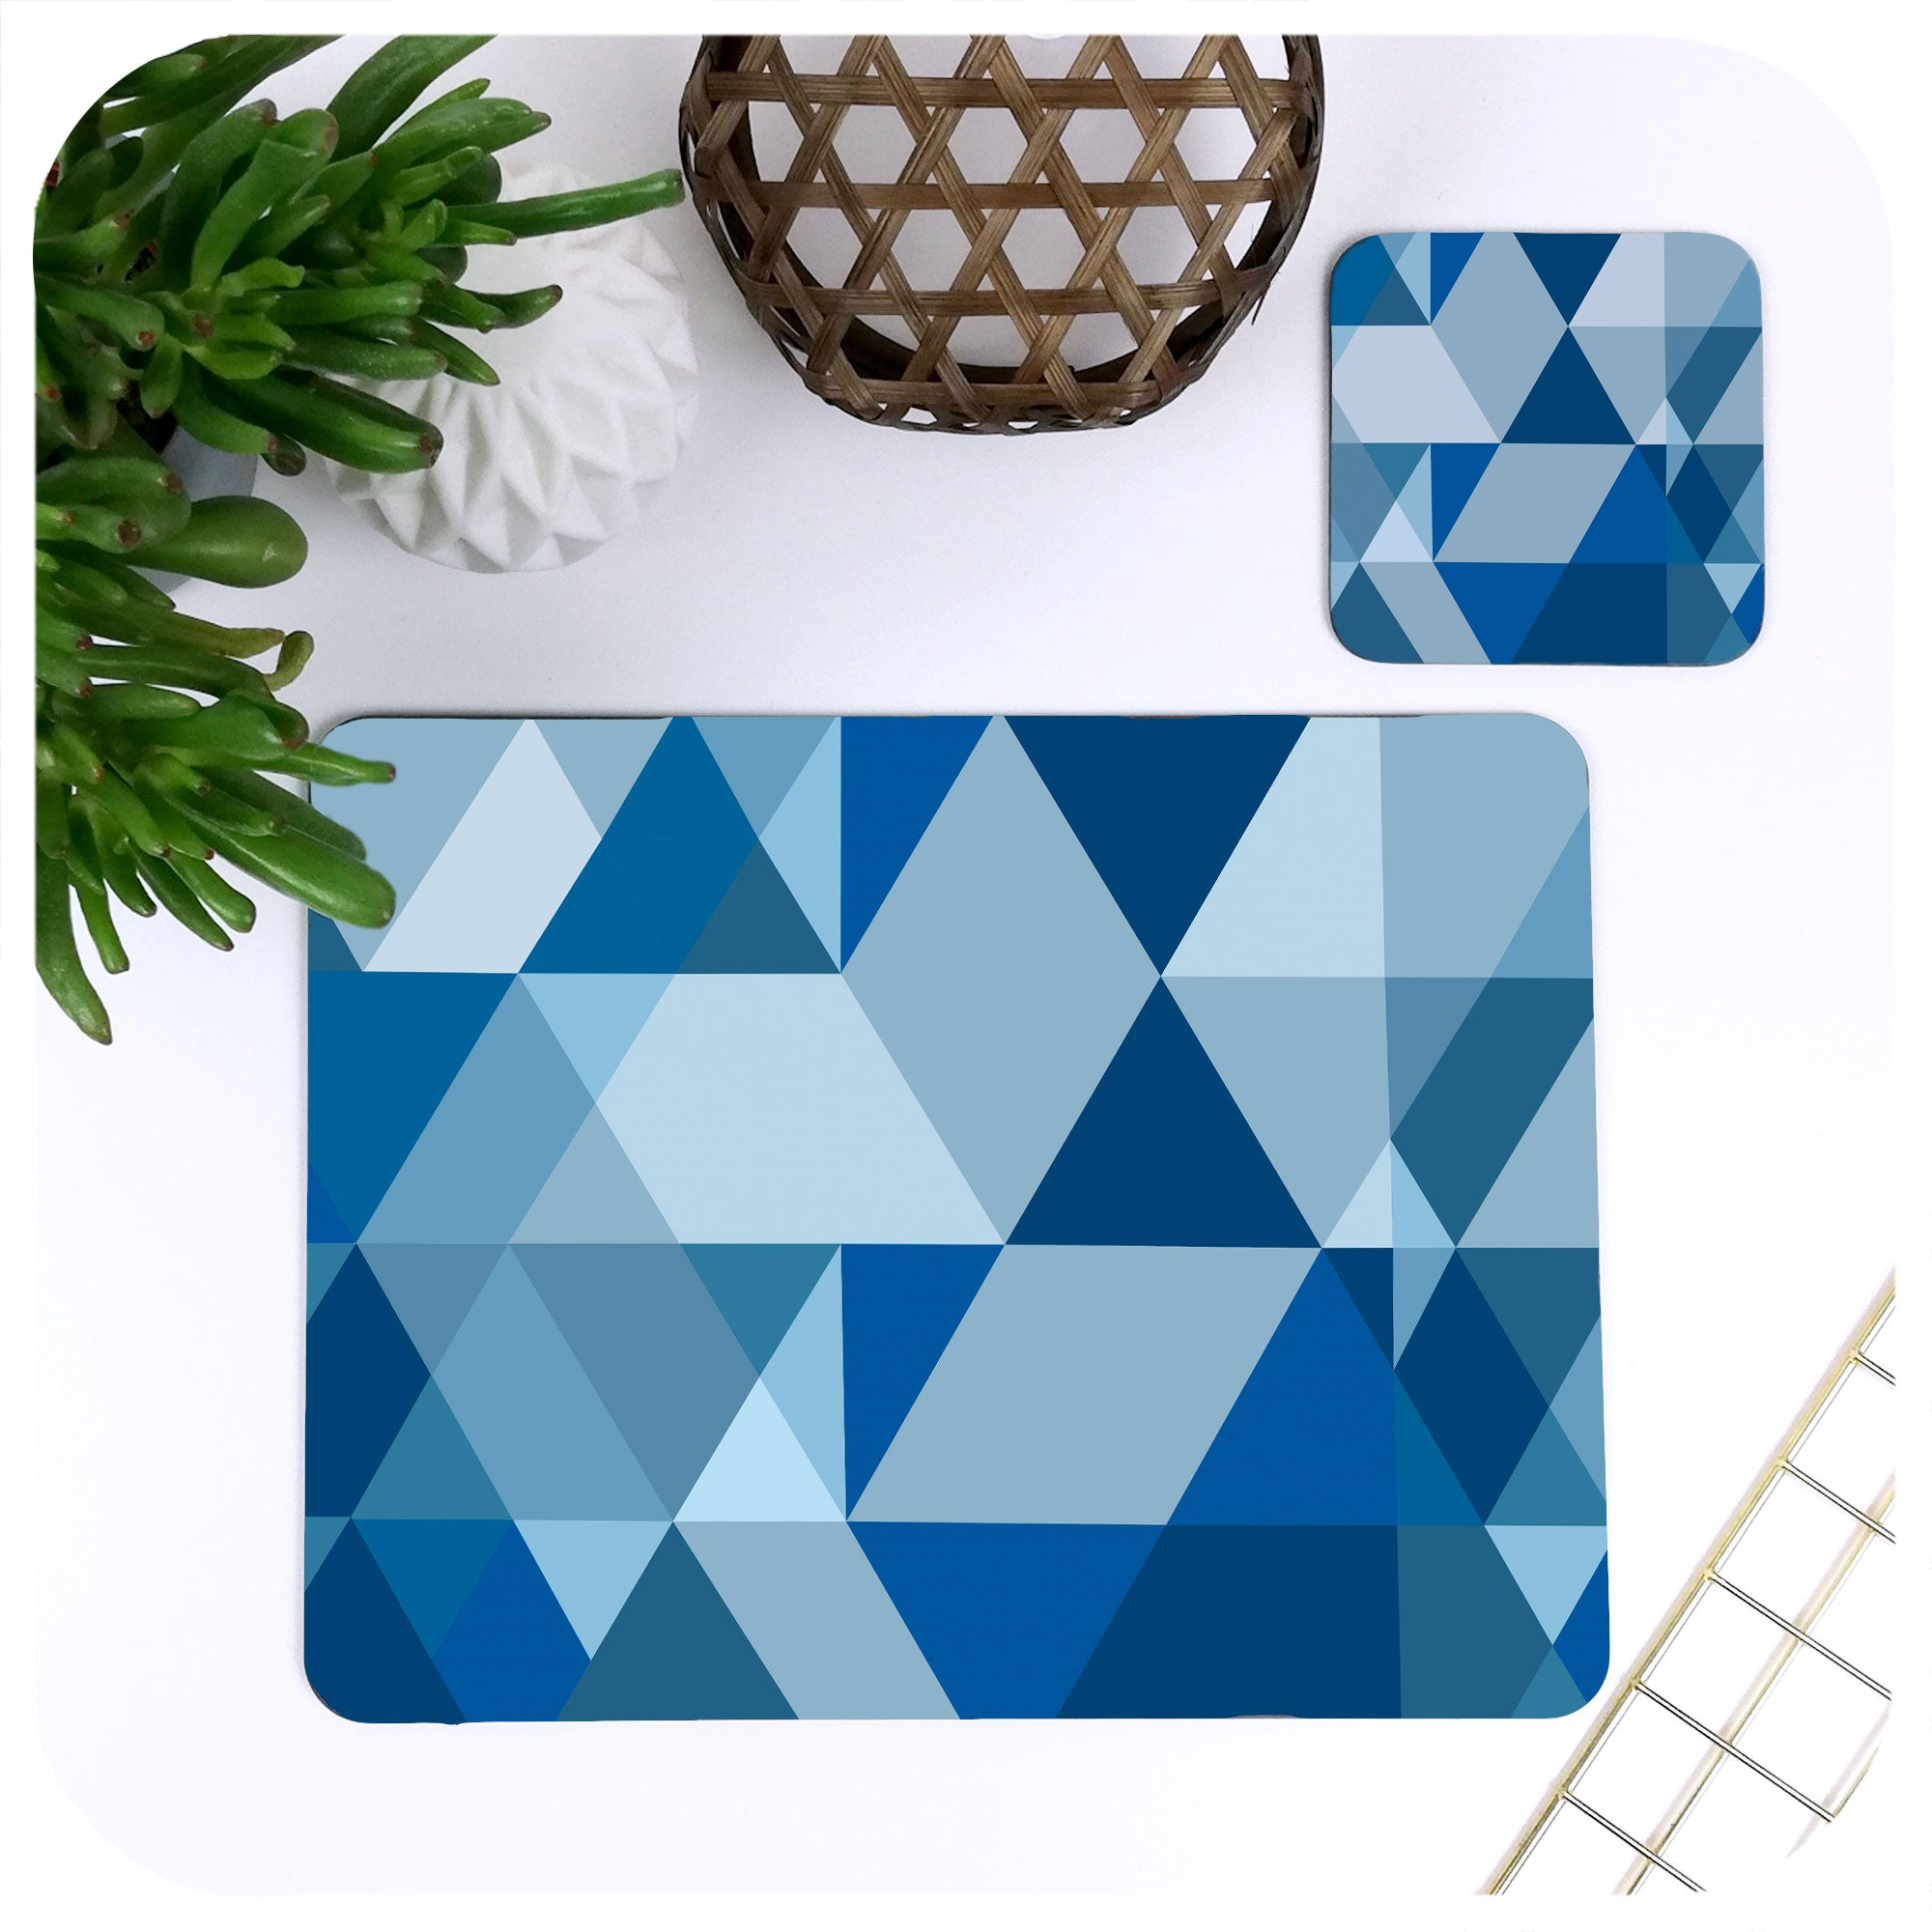 Scandi Geometric Placemat and Coaster in Blue and Grey | The Inkabilly Emporium